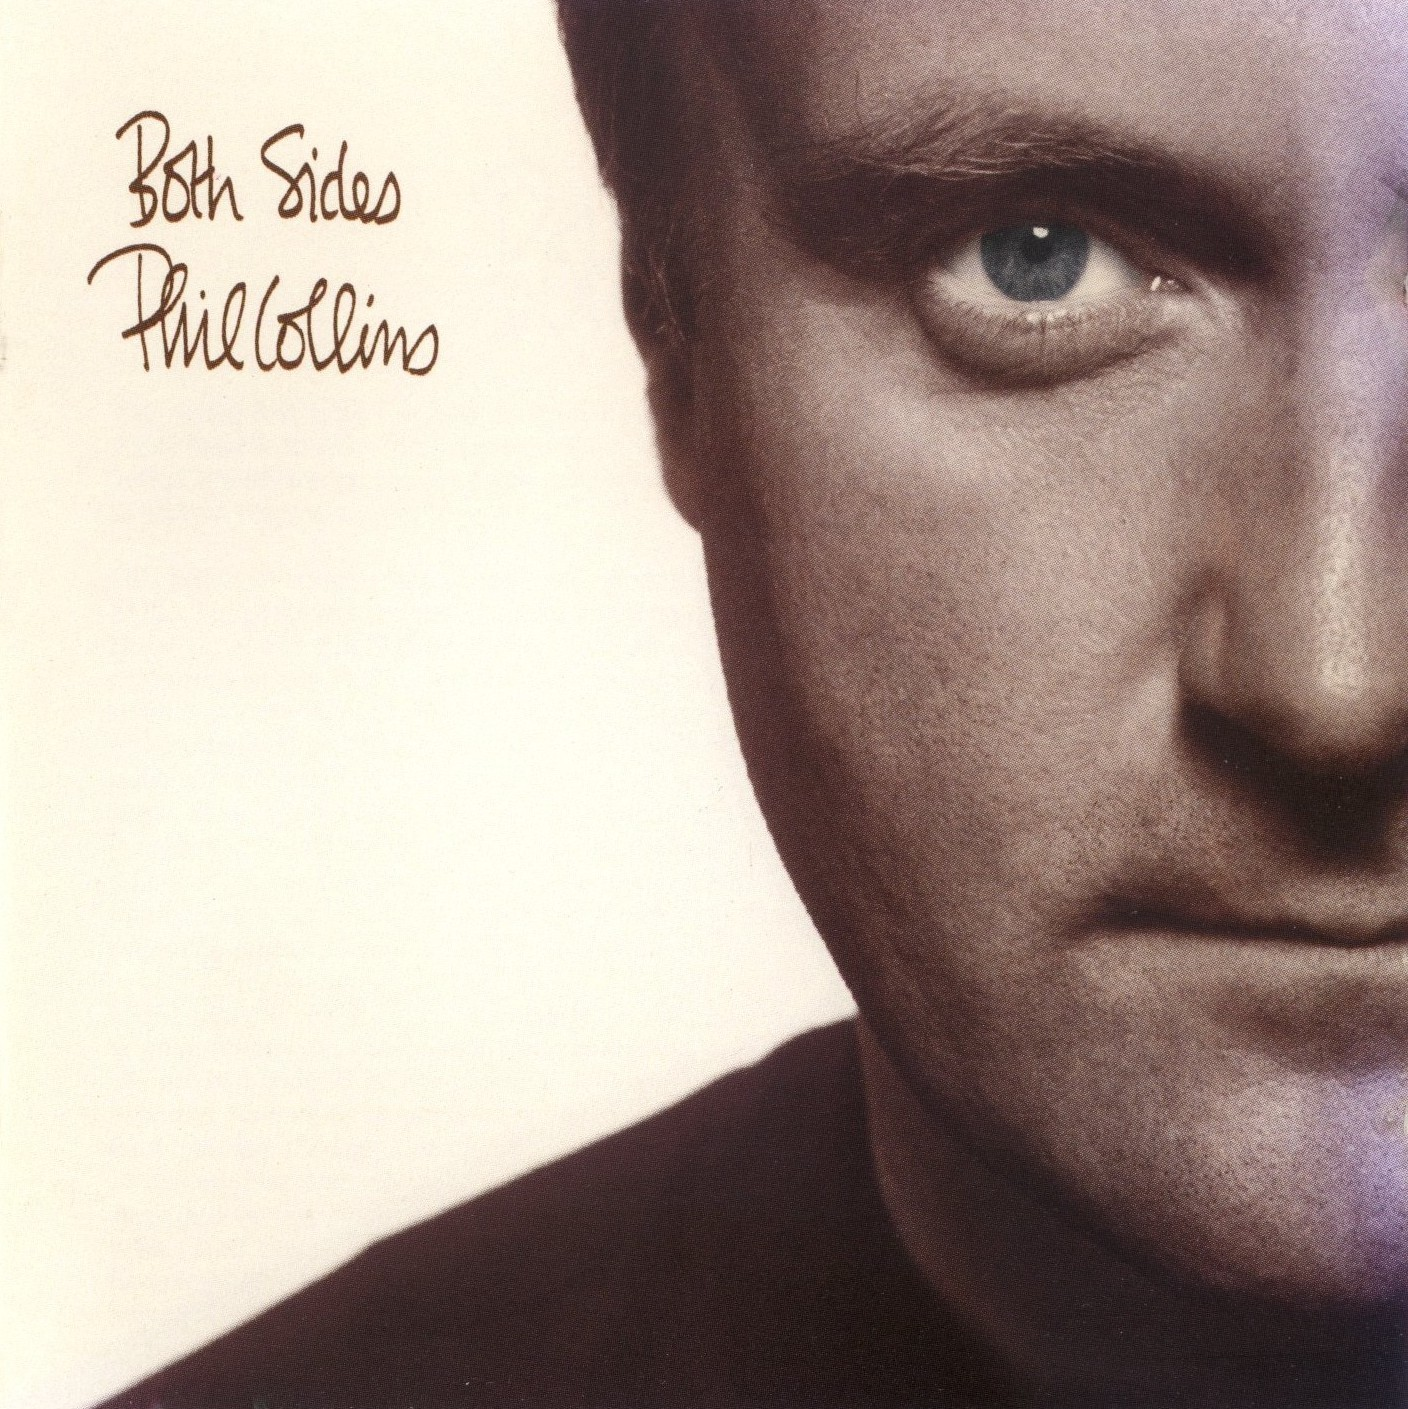 [90's] Phil Collins - Everyday (1993) Phil%20Collins%20-%20Both%20Sides